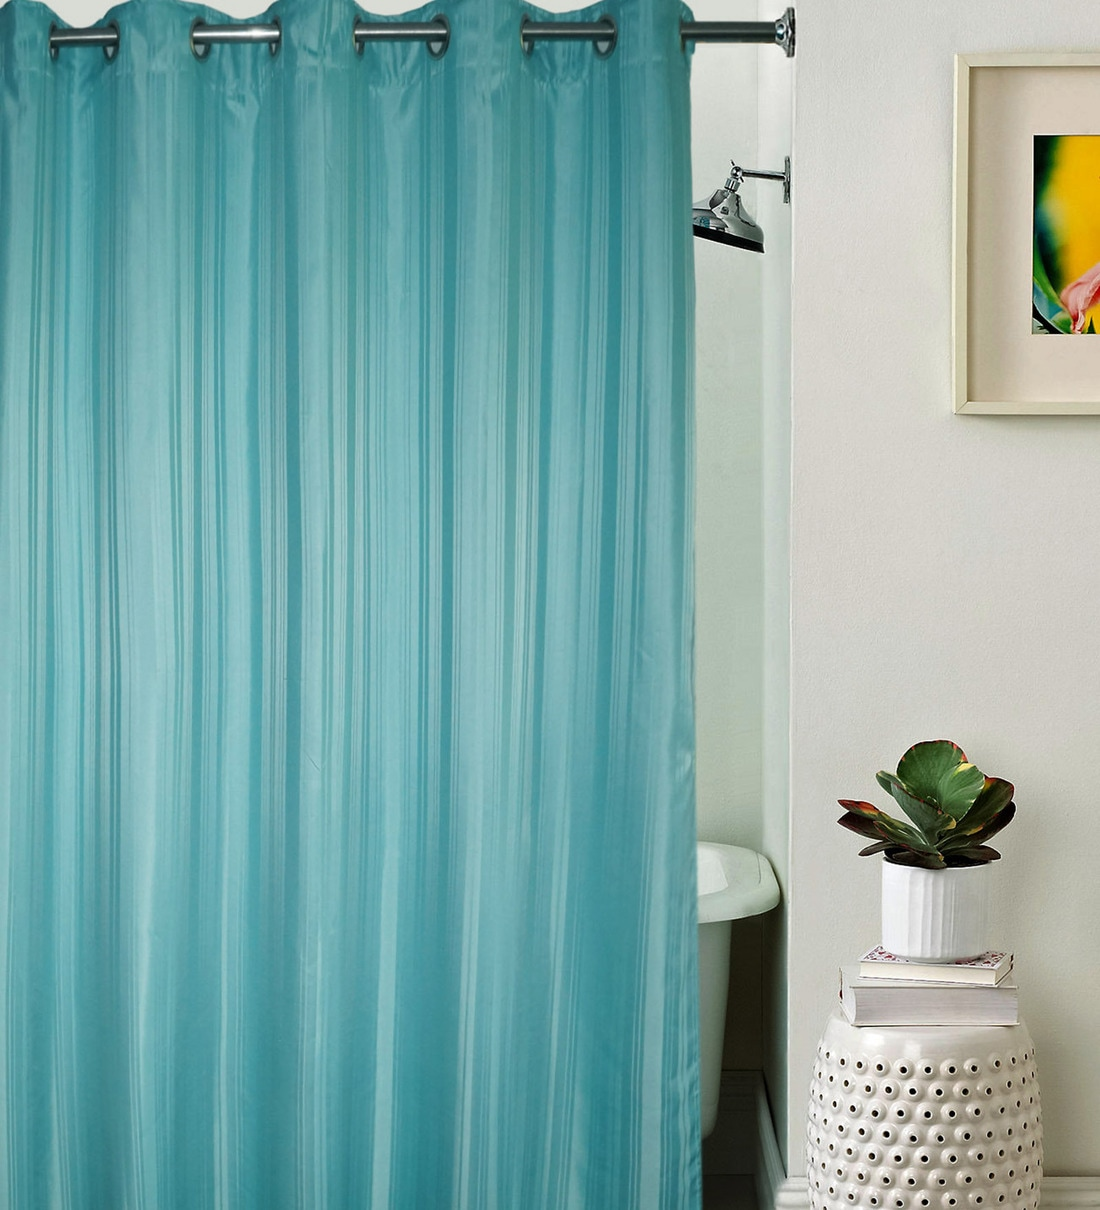 Buy Blue Striped Pattern Polyester Shower Curtain By Lushomes Online Shower Curtains Shower Curtains Furnishings Pepperfry Product